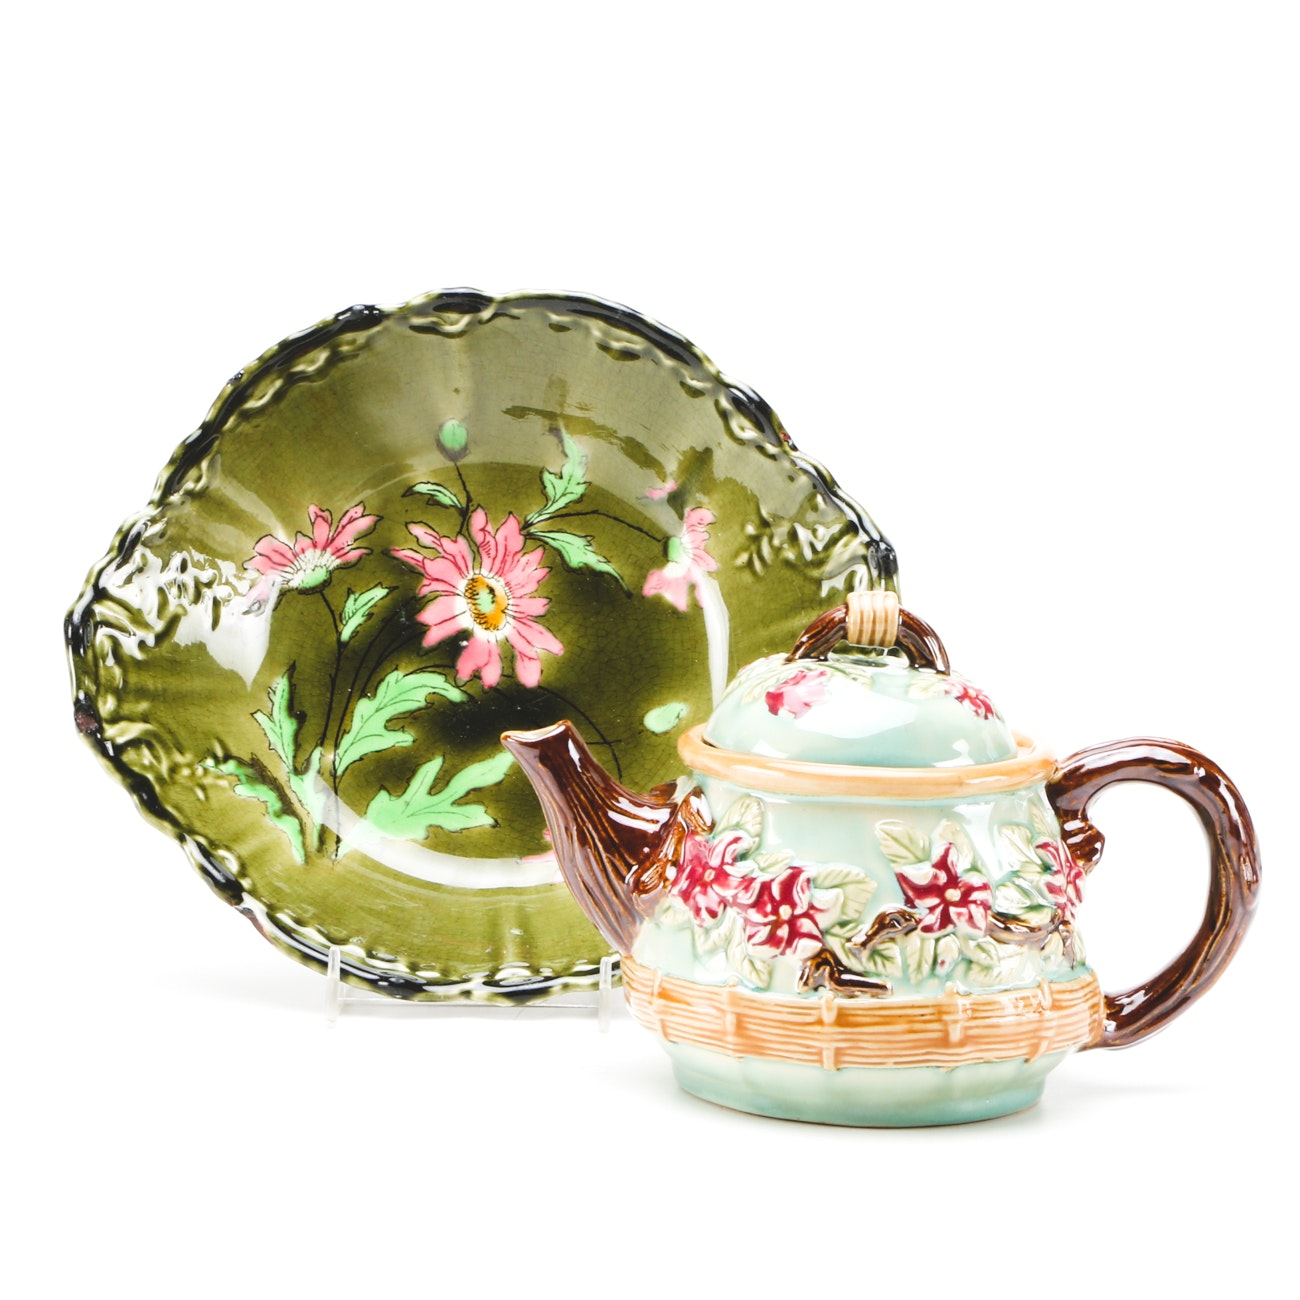 Majolica Art Pottery Including Teapot and Bowl